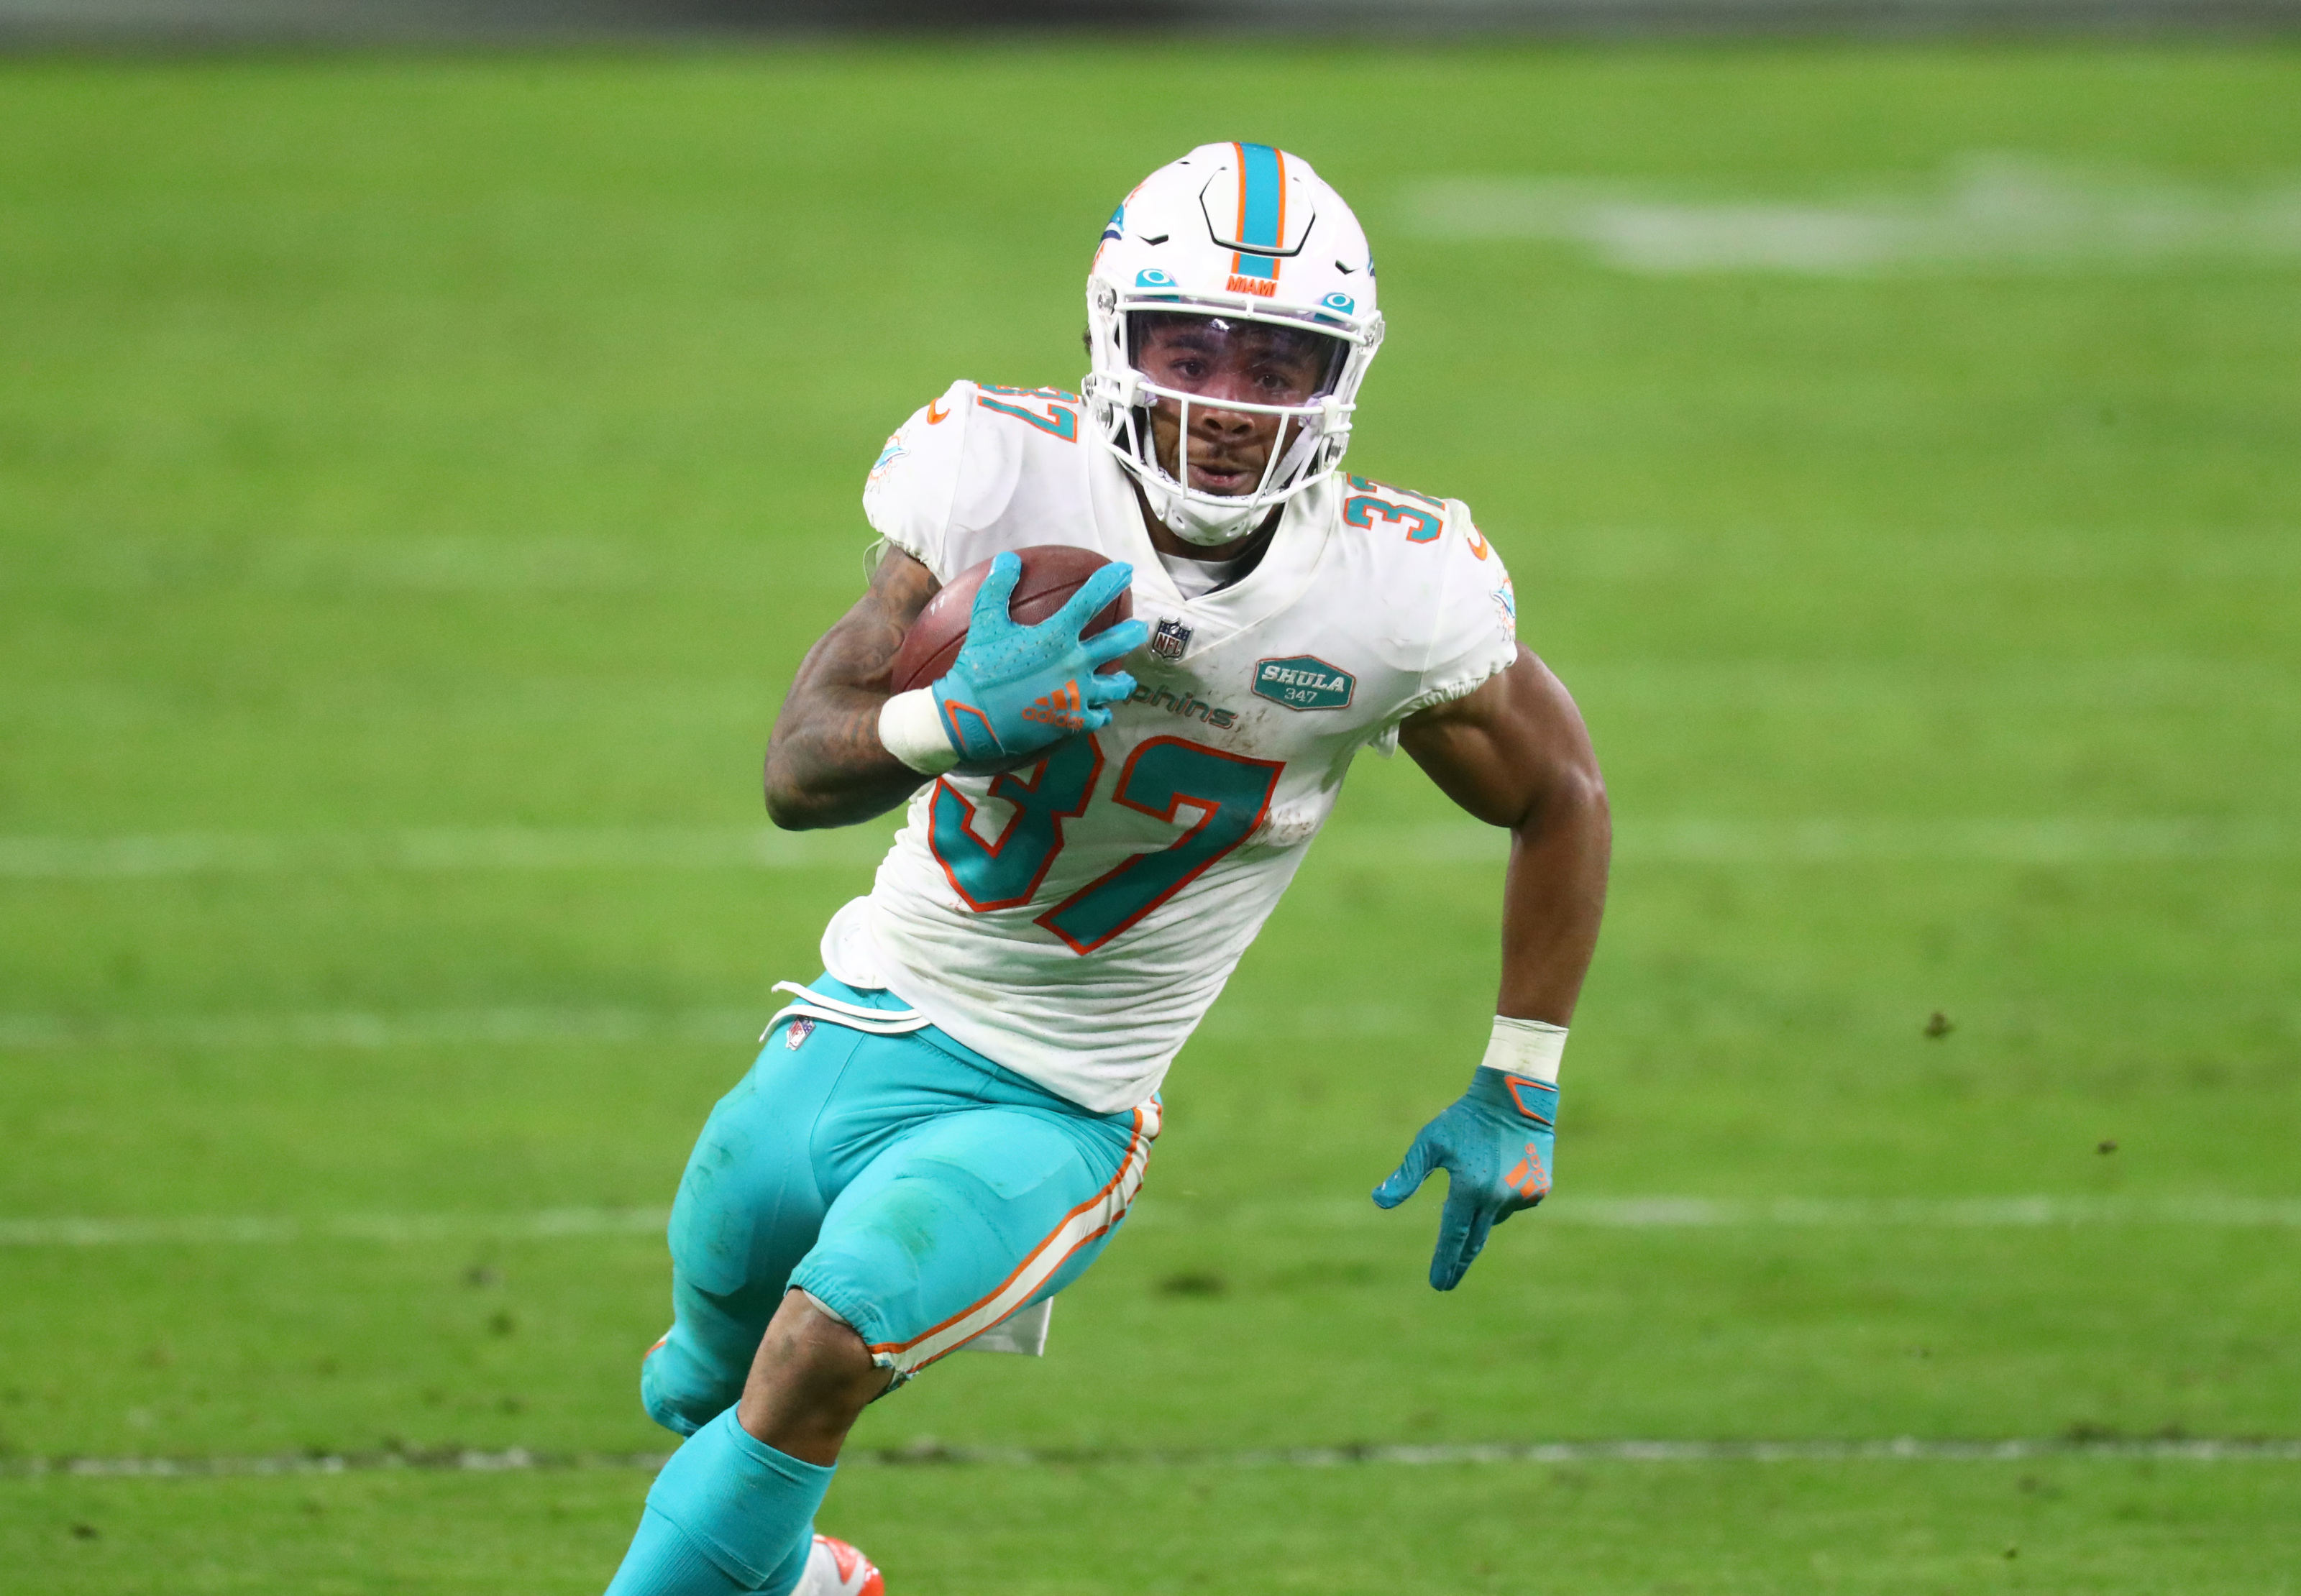 Miami Dolphins running back Myles Gaskin should not be ranked 32